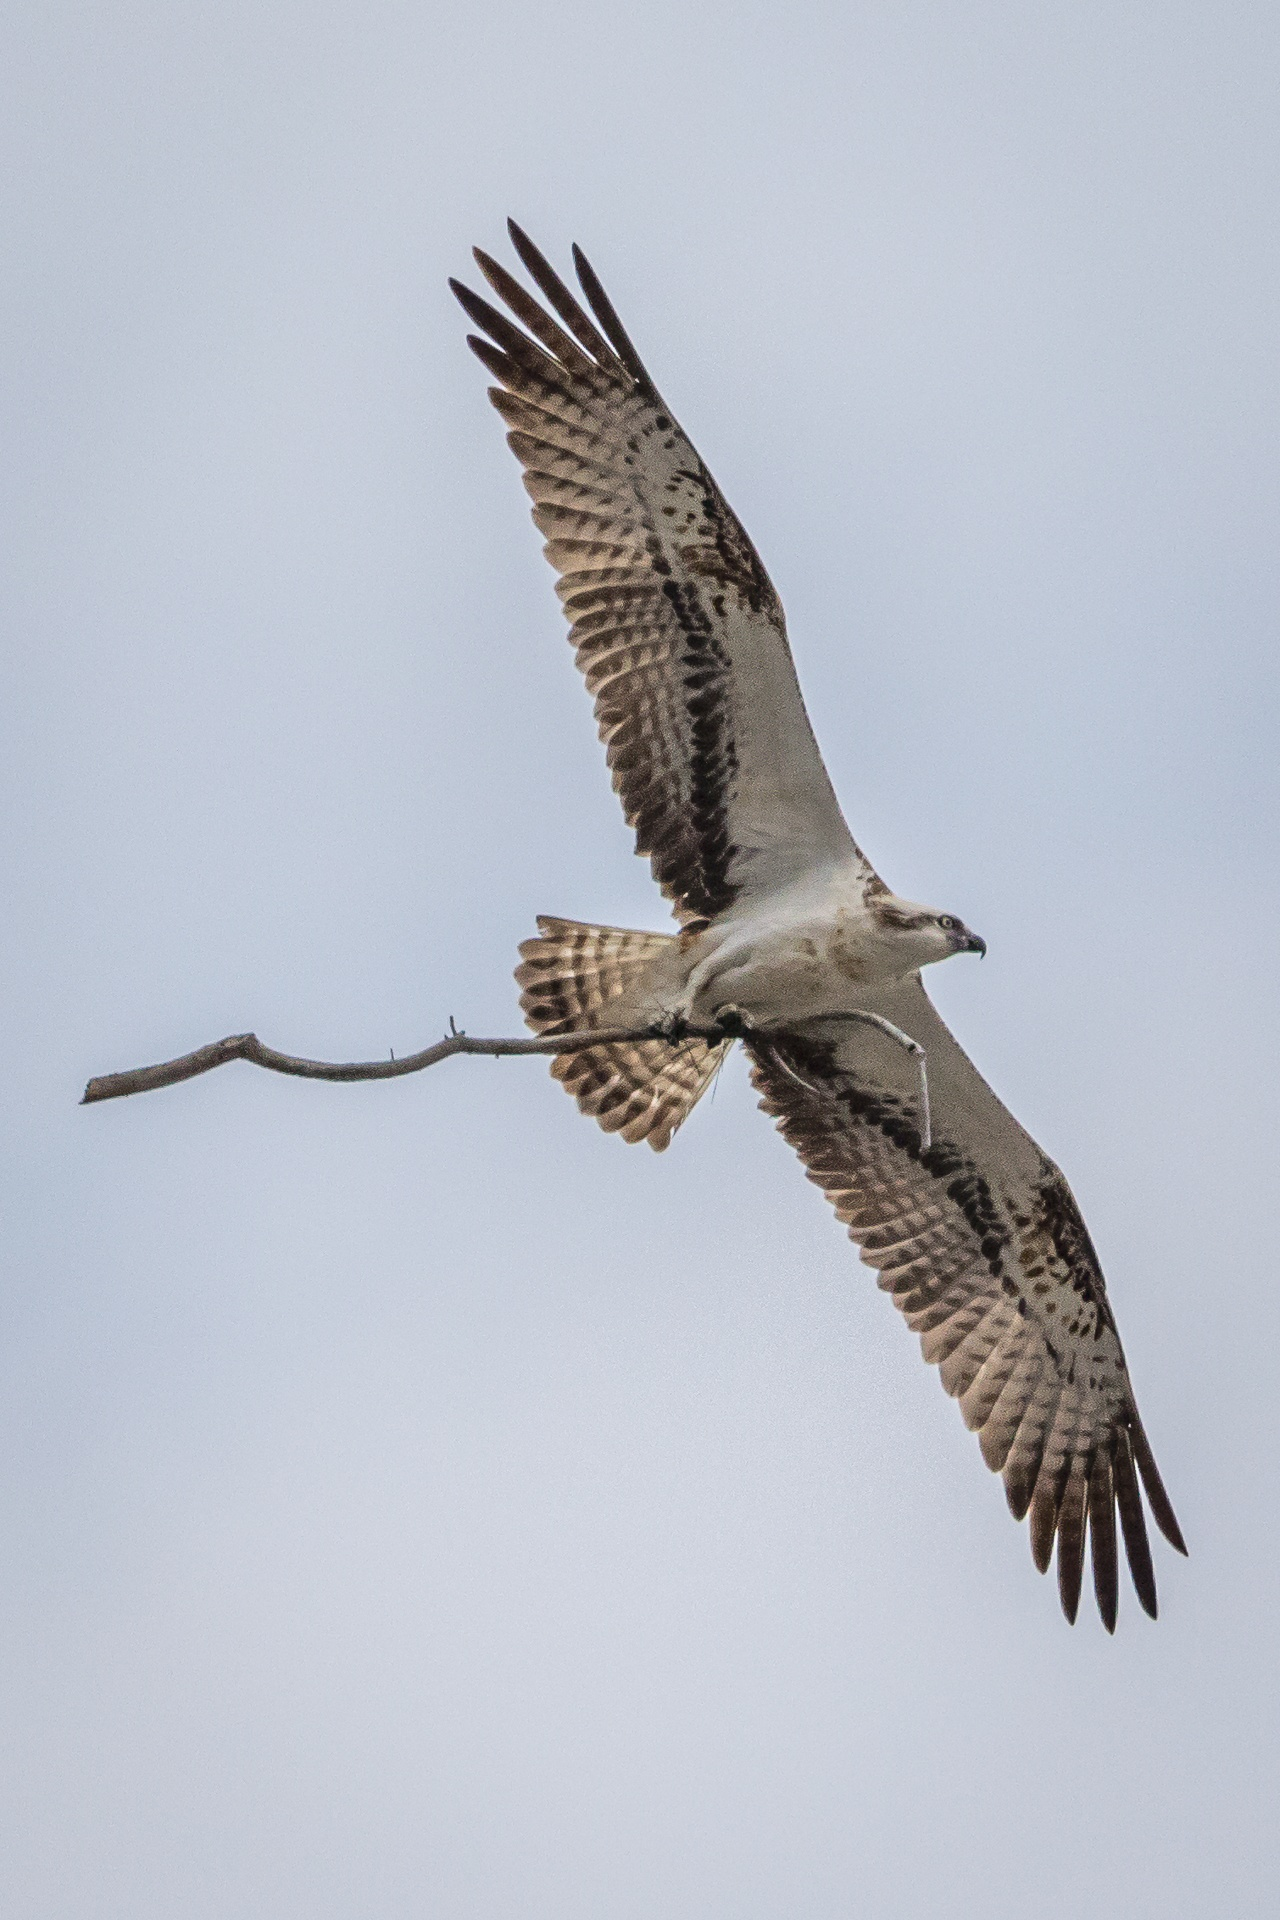 Osprey in flight carrying large twig for nest building